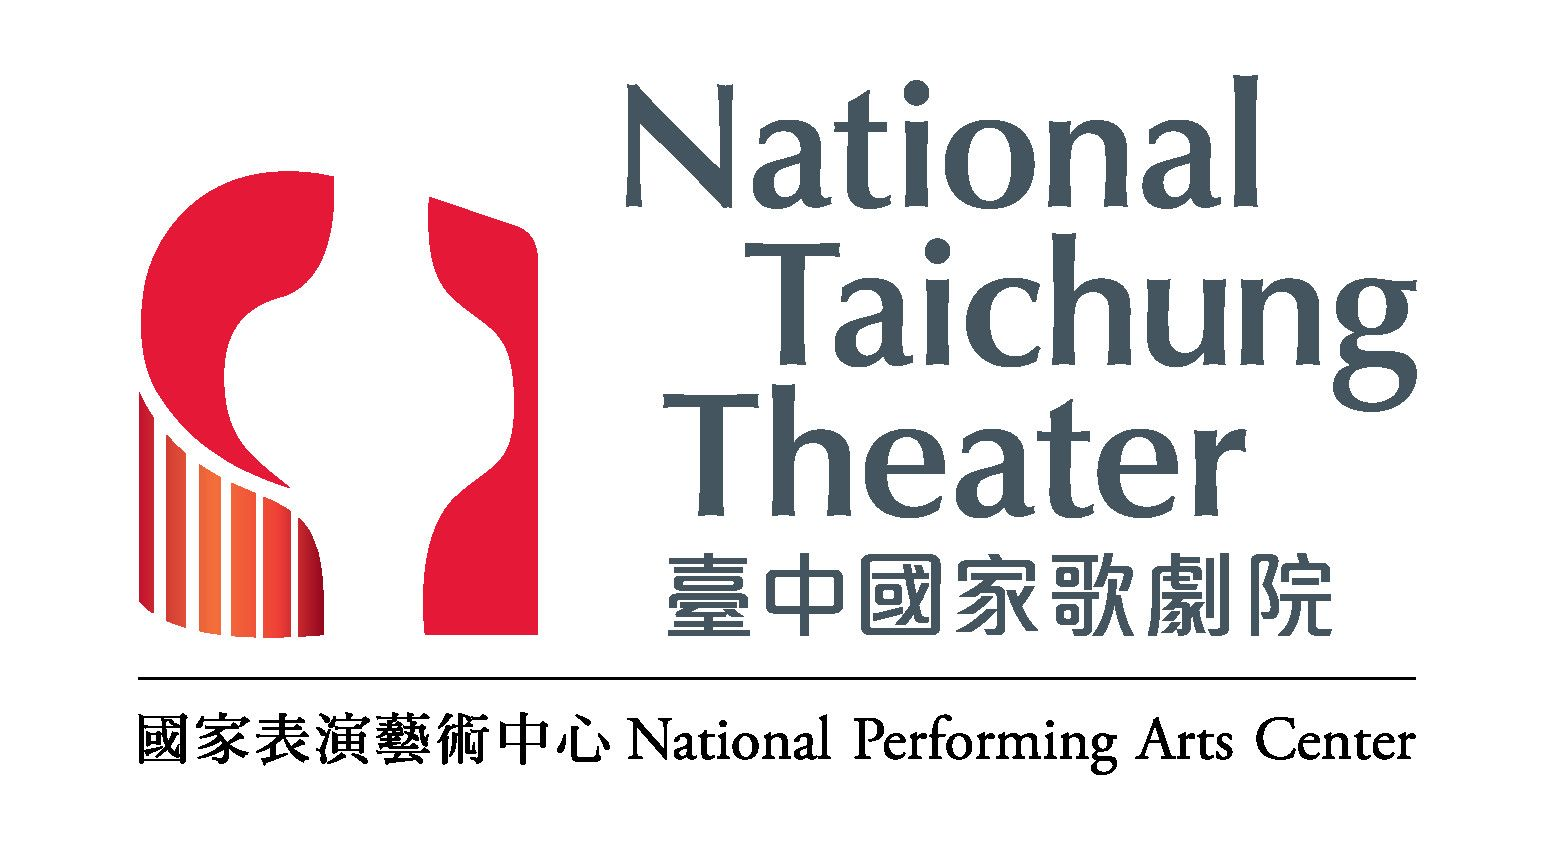 National Performing Arts Center - National  Taichung Theater